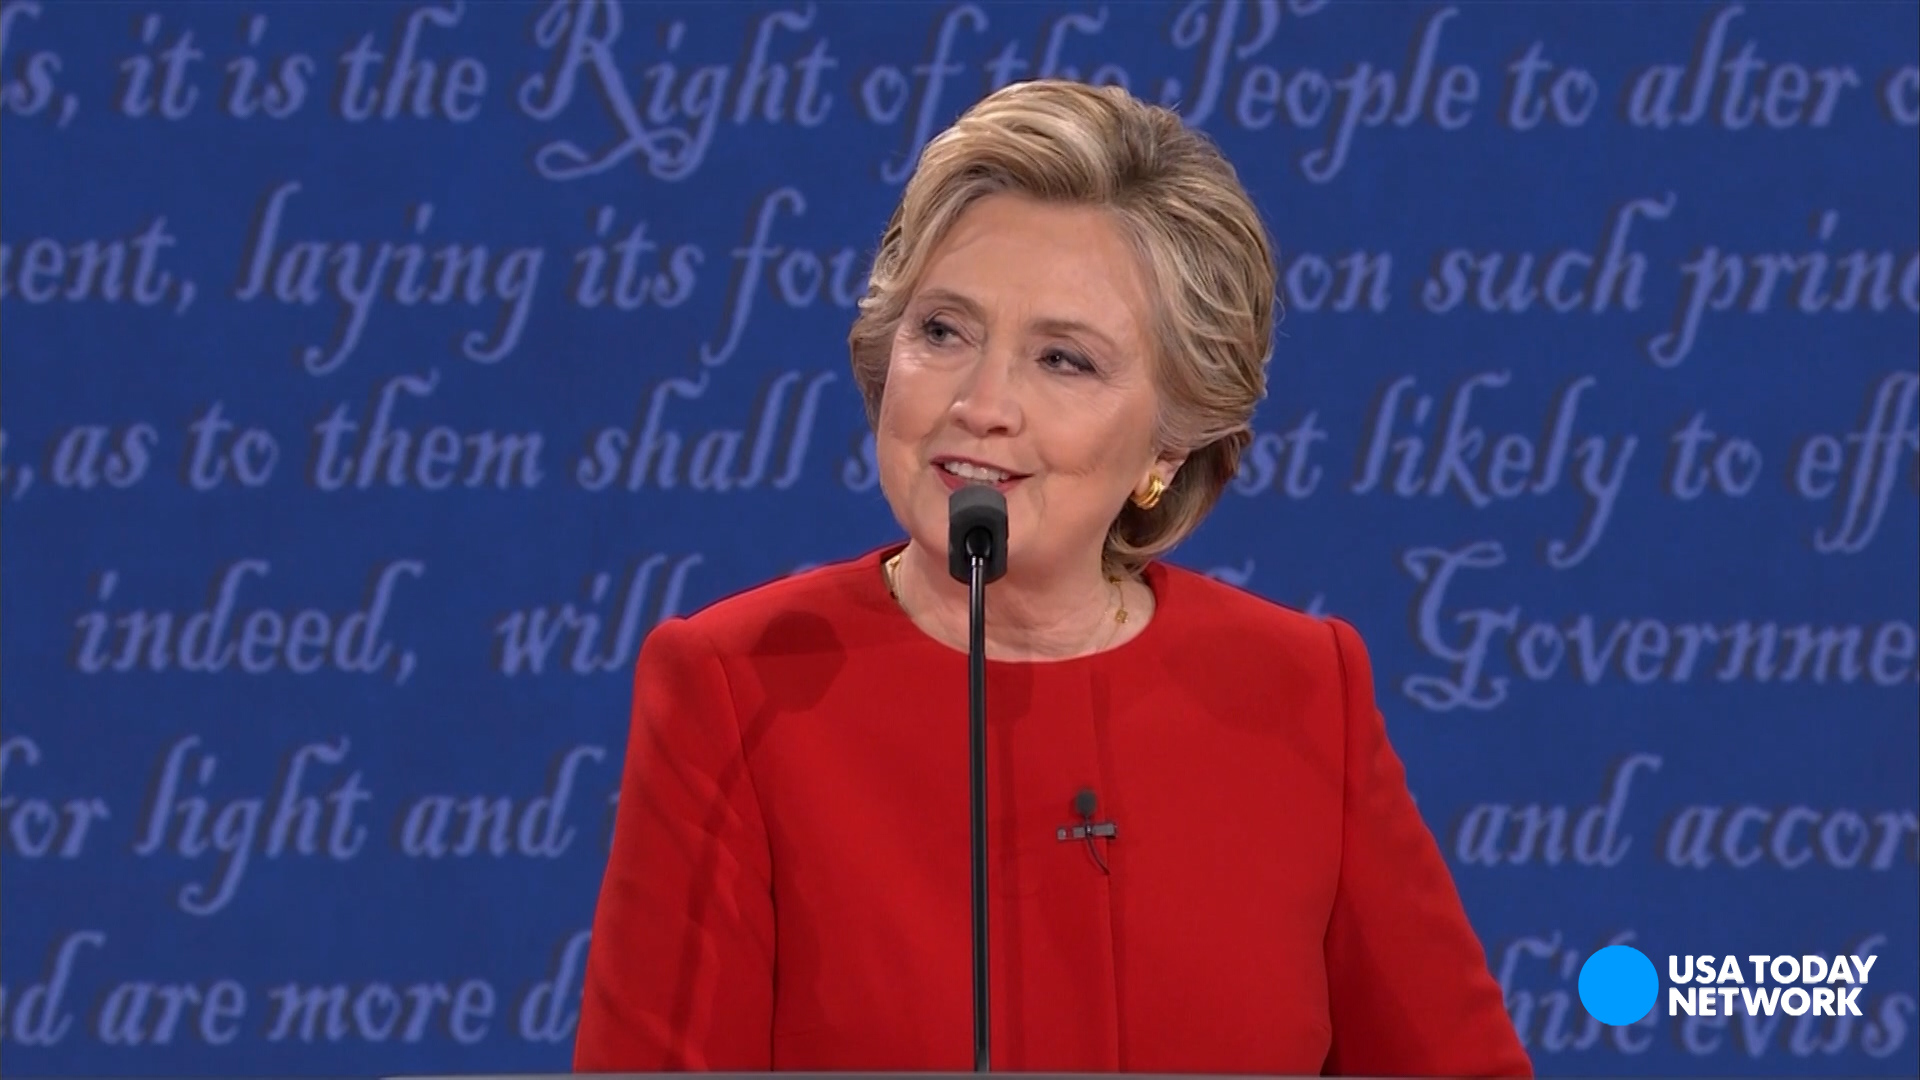 Video highlights from Presidential Debate - Good, bad and funny